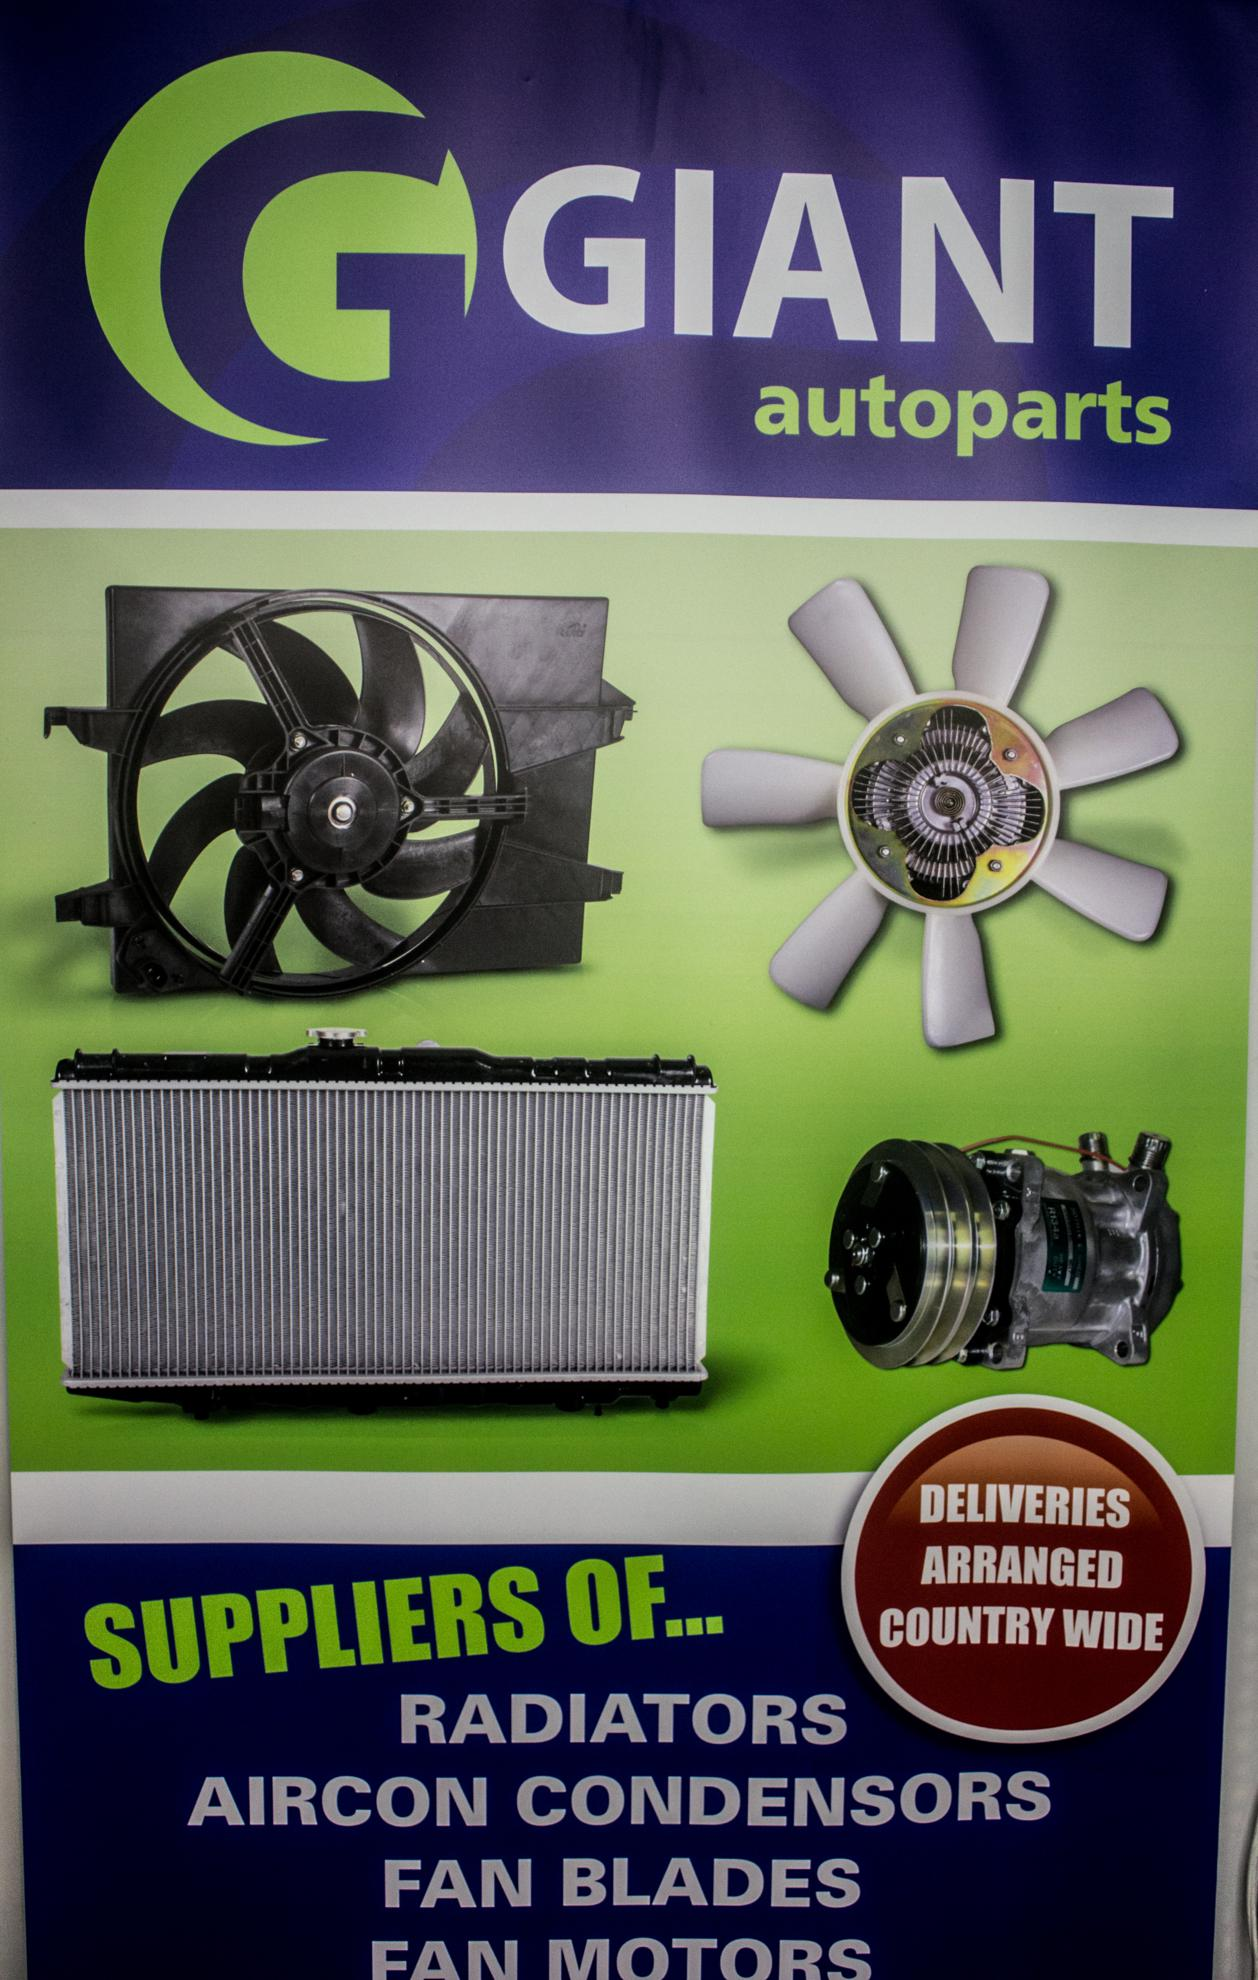 Automechanika-Giant-Autoparts